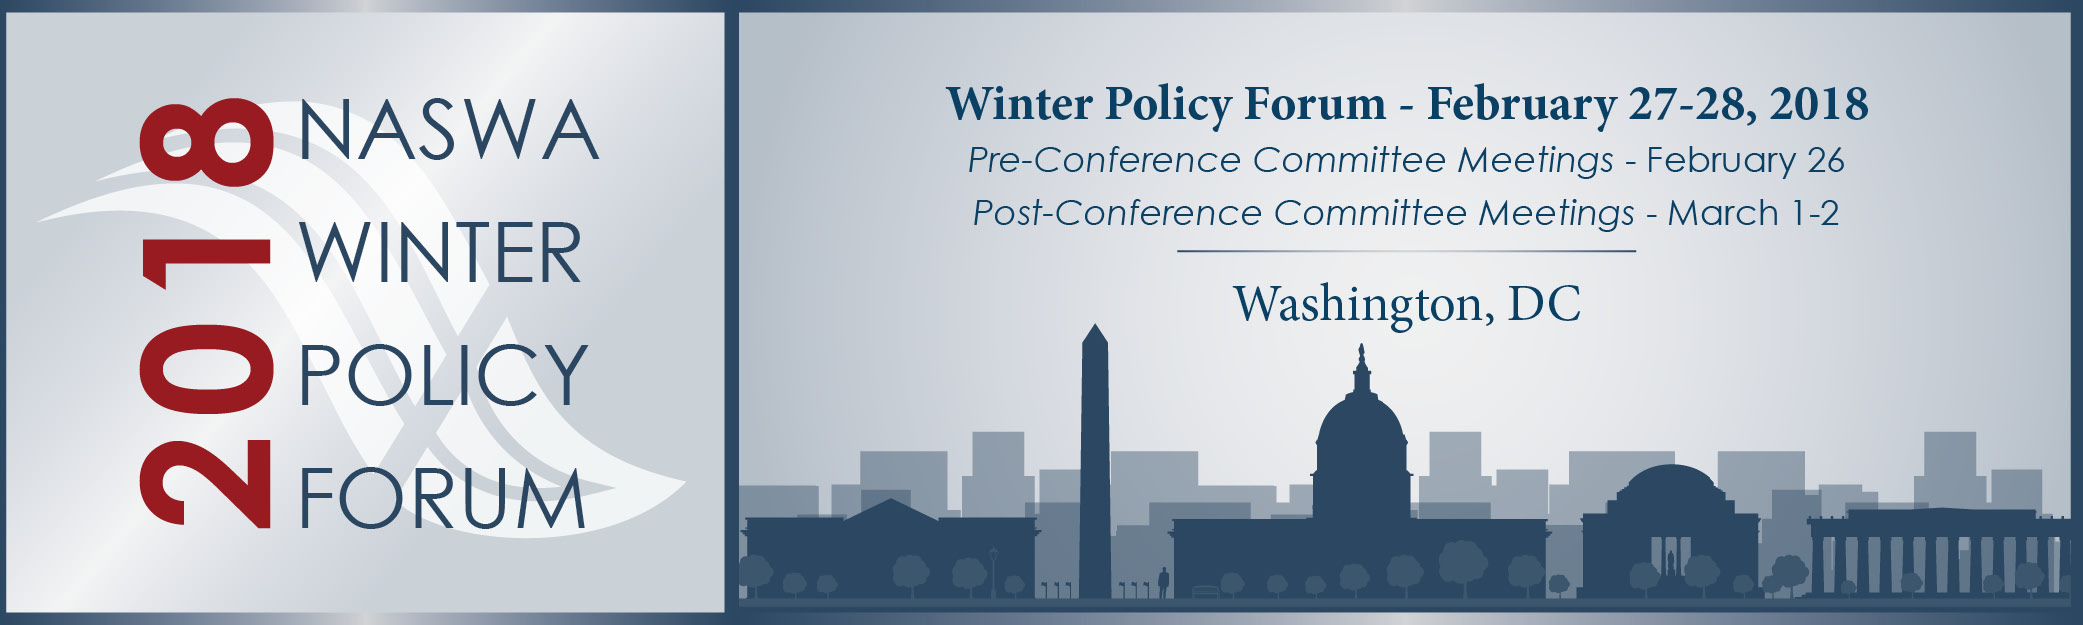 Winter Policy Forum 2018 Sponsorships